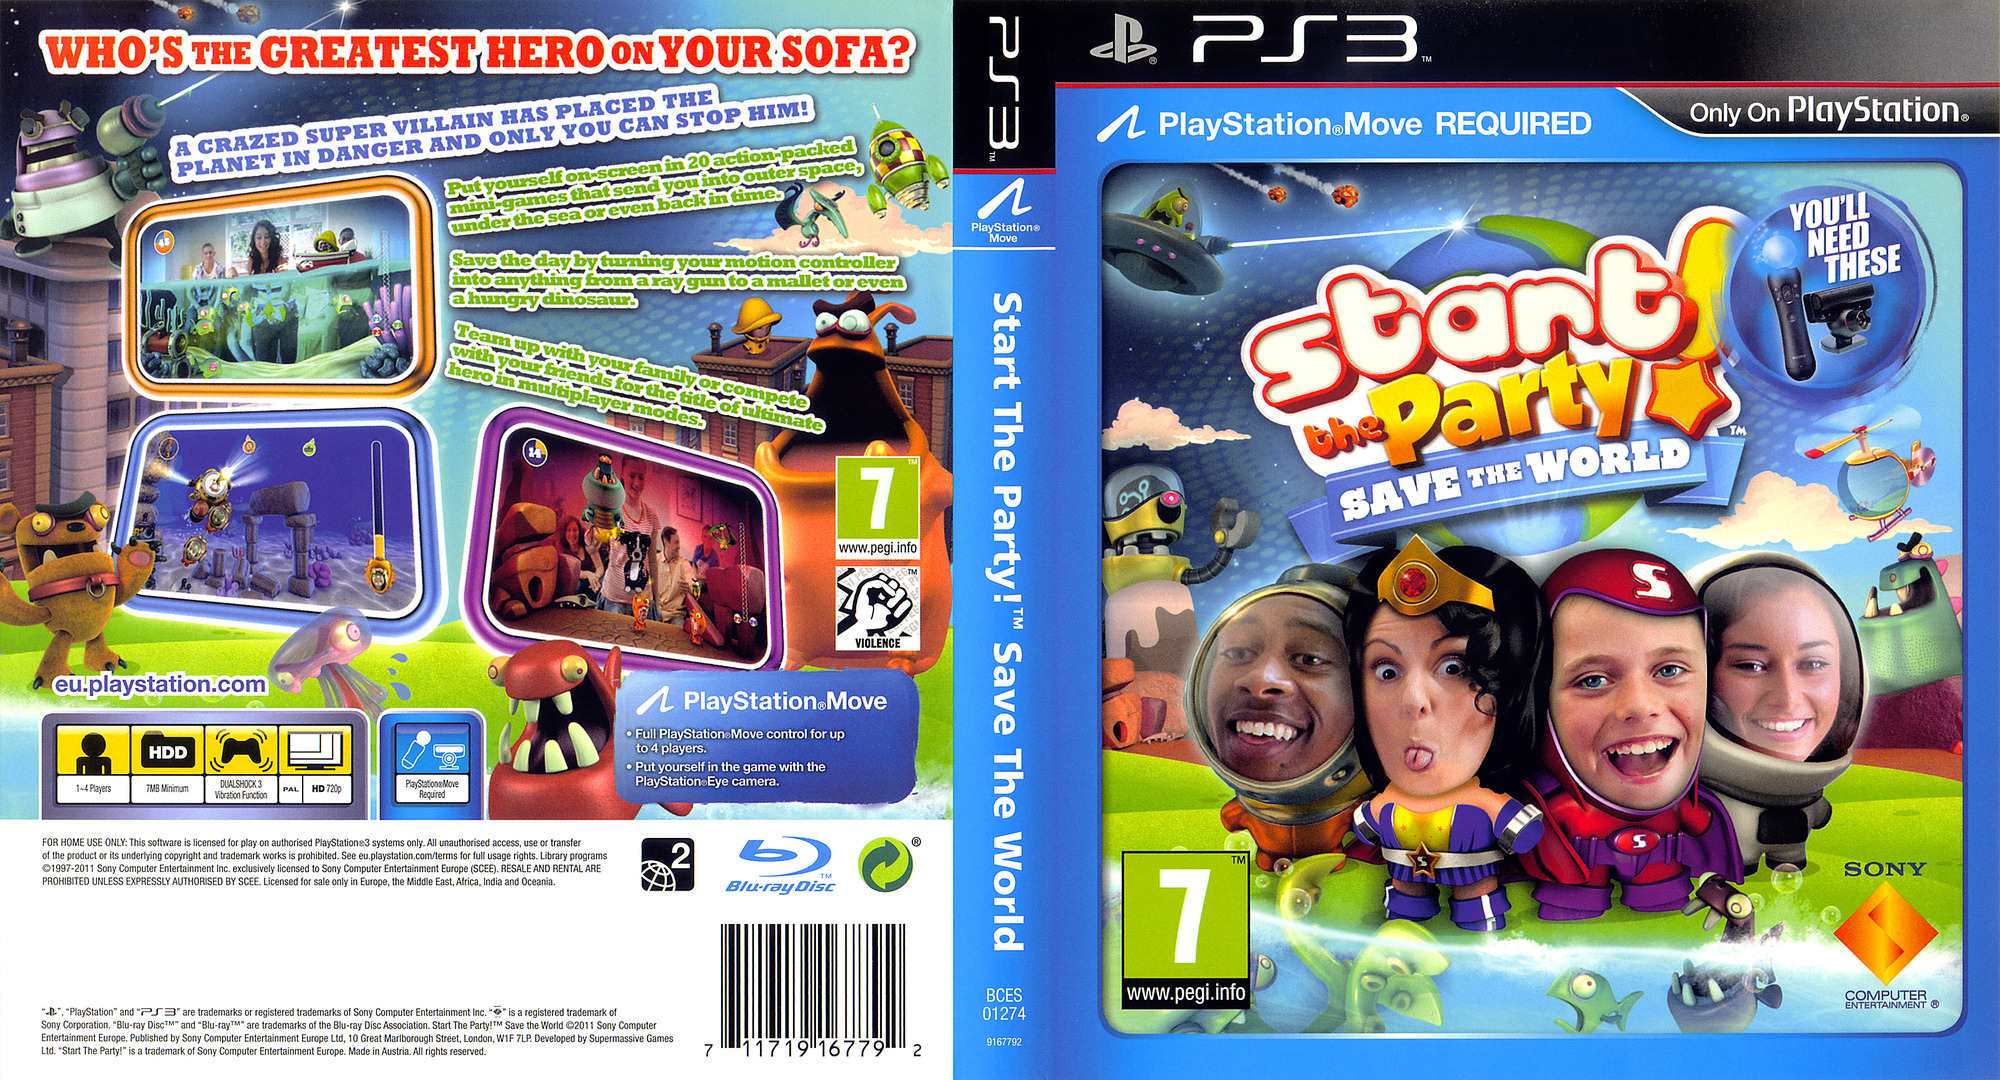 Start the Party! Save the World PS3 coverfullHQ (BCES01274)